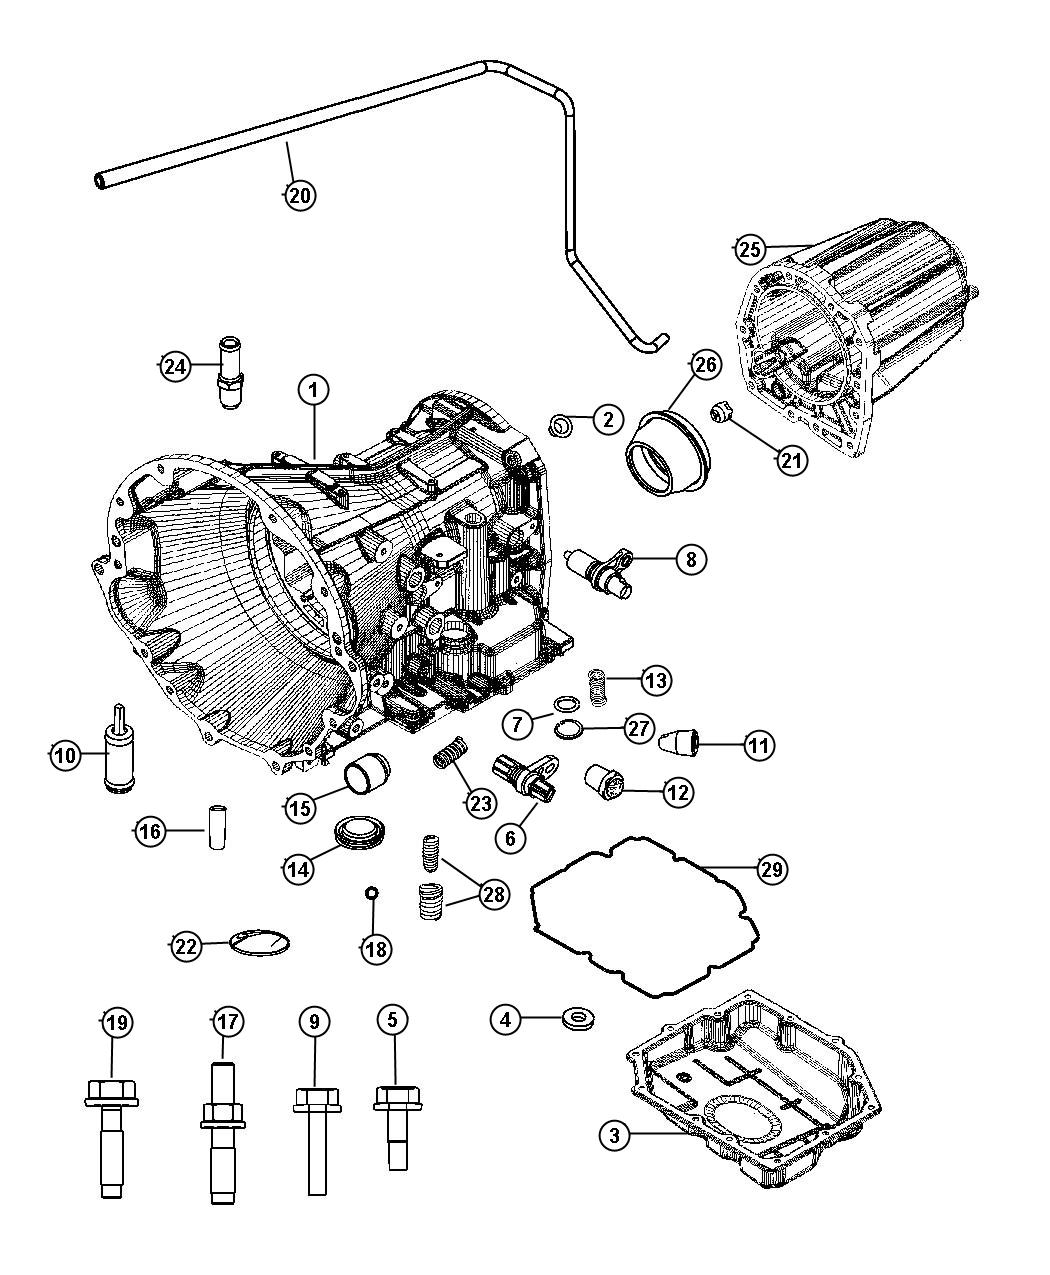 93 Club Car Engine Diagram Wiring Master Blogs 290 Chrysler Oem Parts Diagrams Imageresizertool Com Fe290 Electrical Schematic